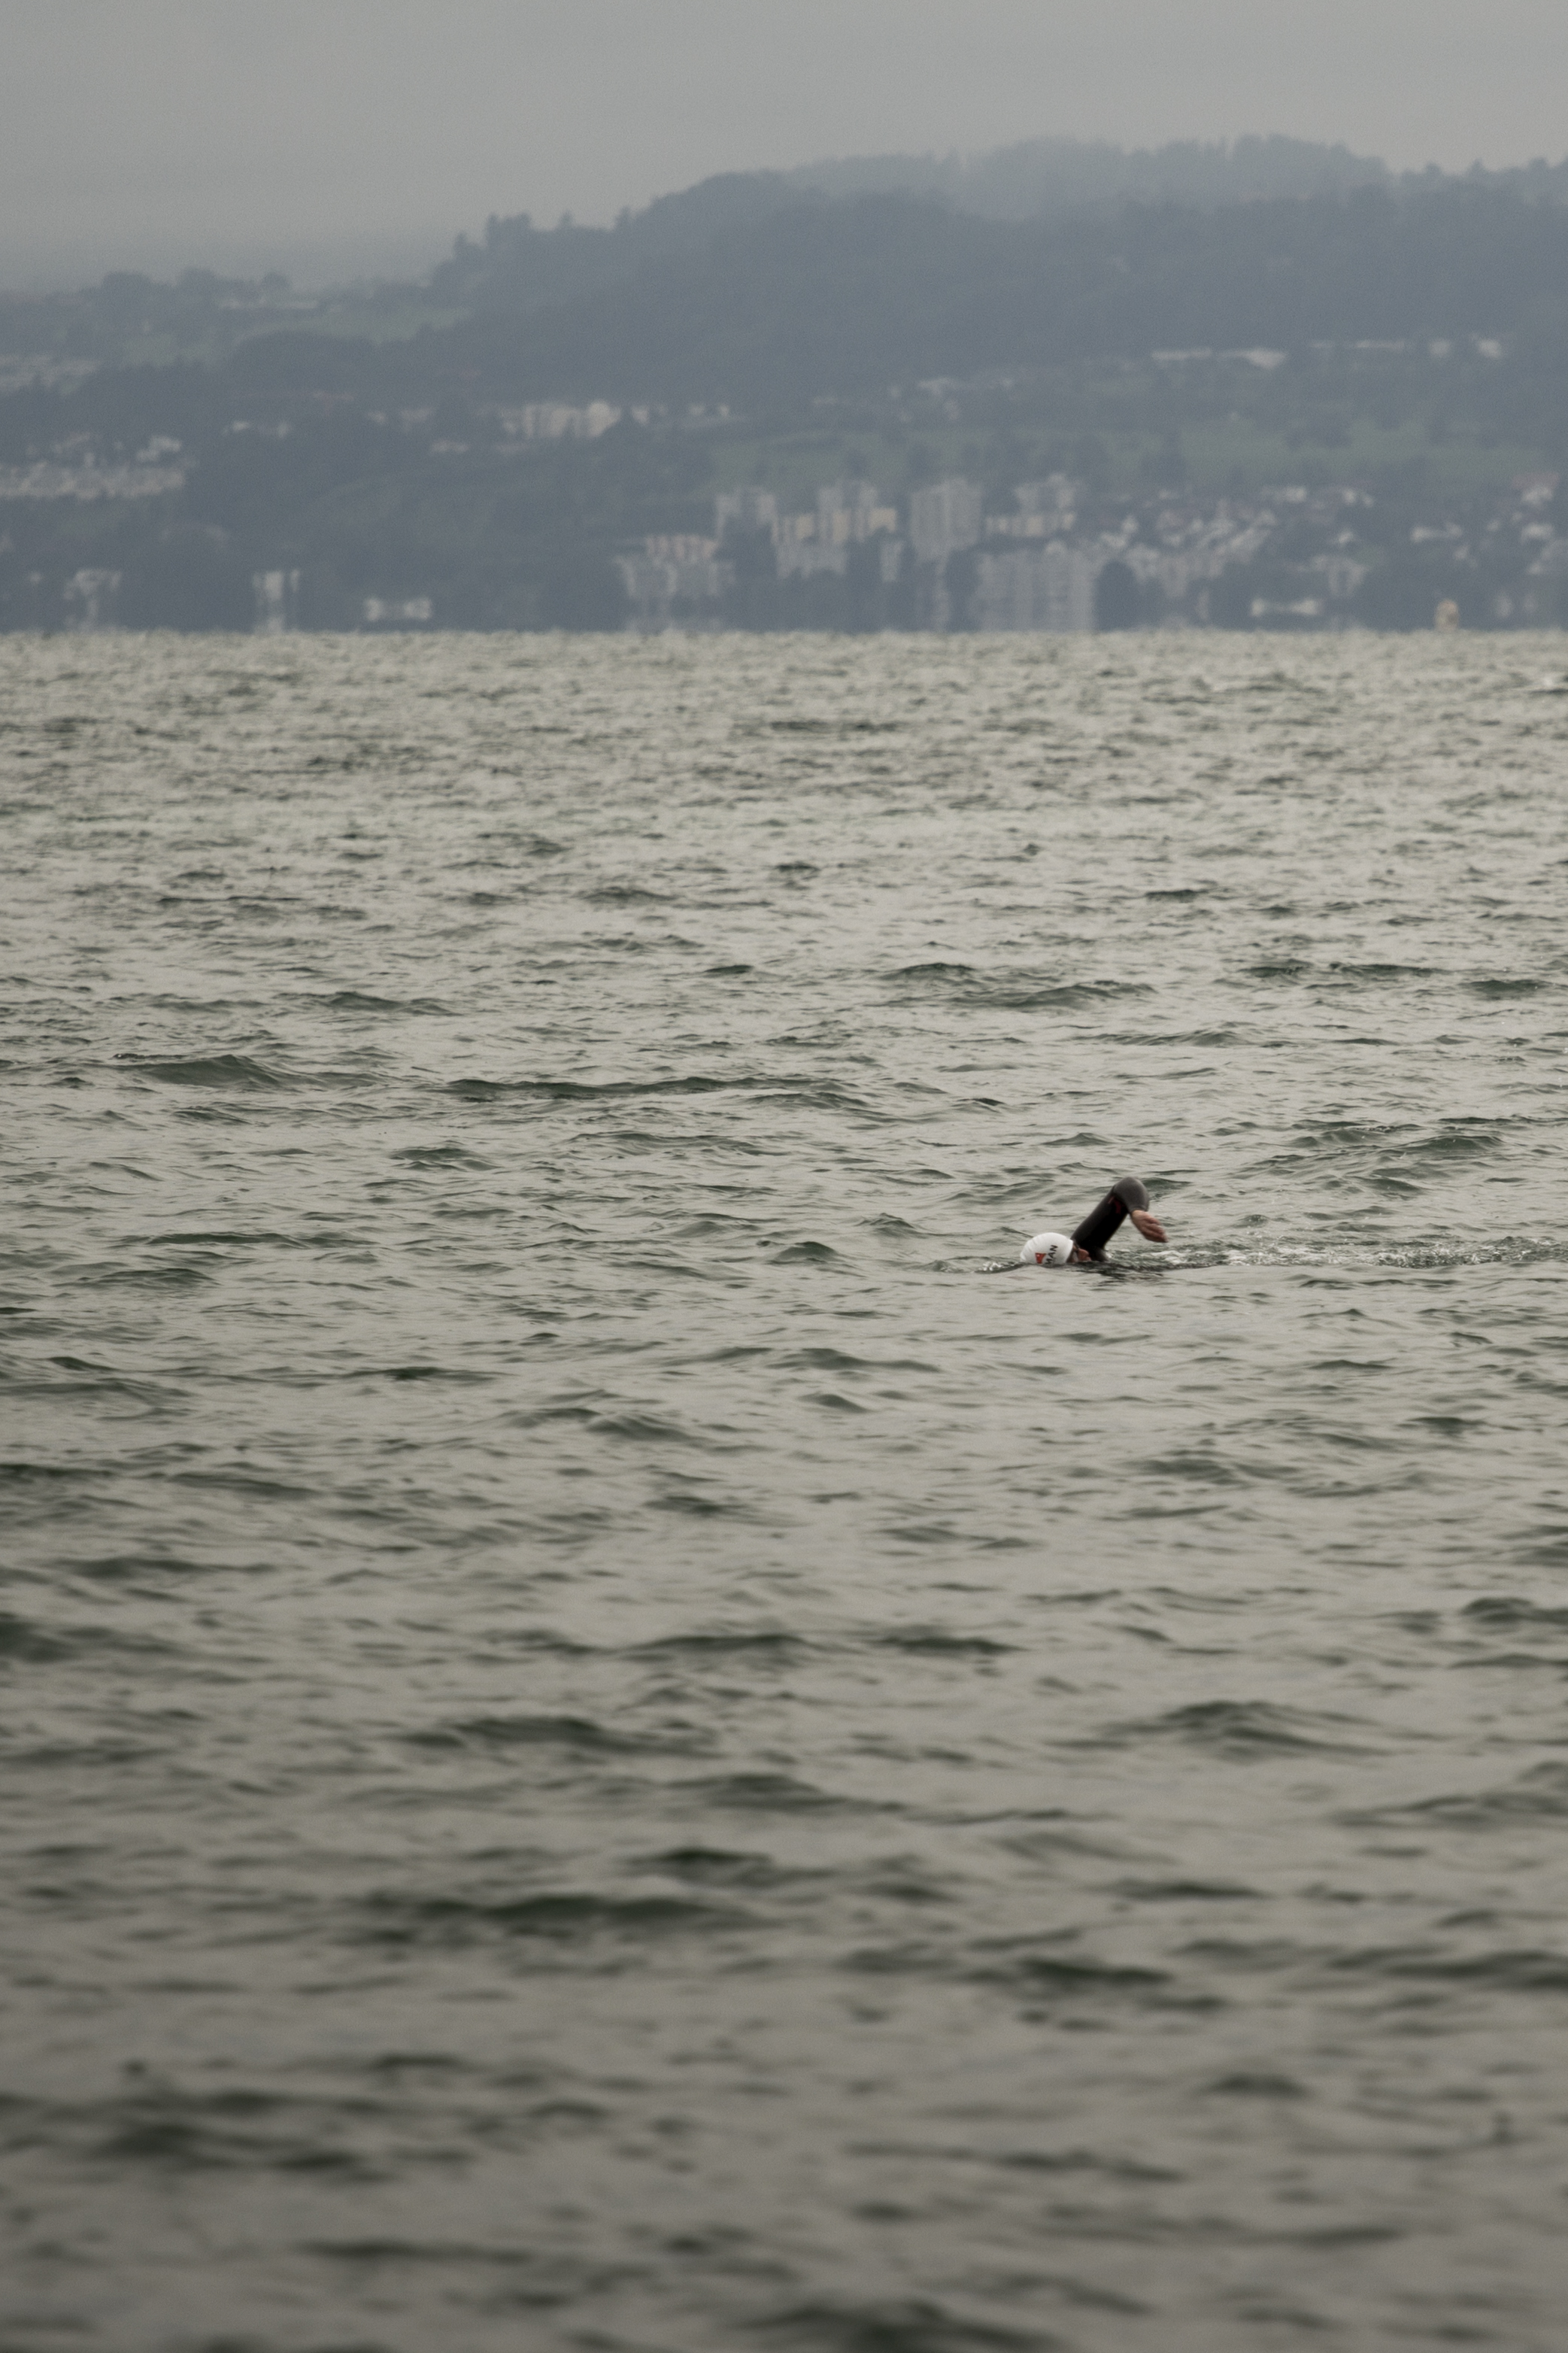 Ironman Zurich, 2014. Athletes from around the world are training in cold open waters before the race.